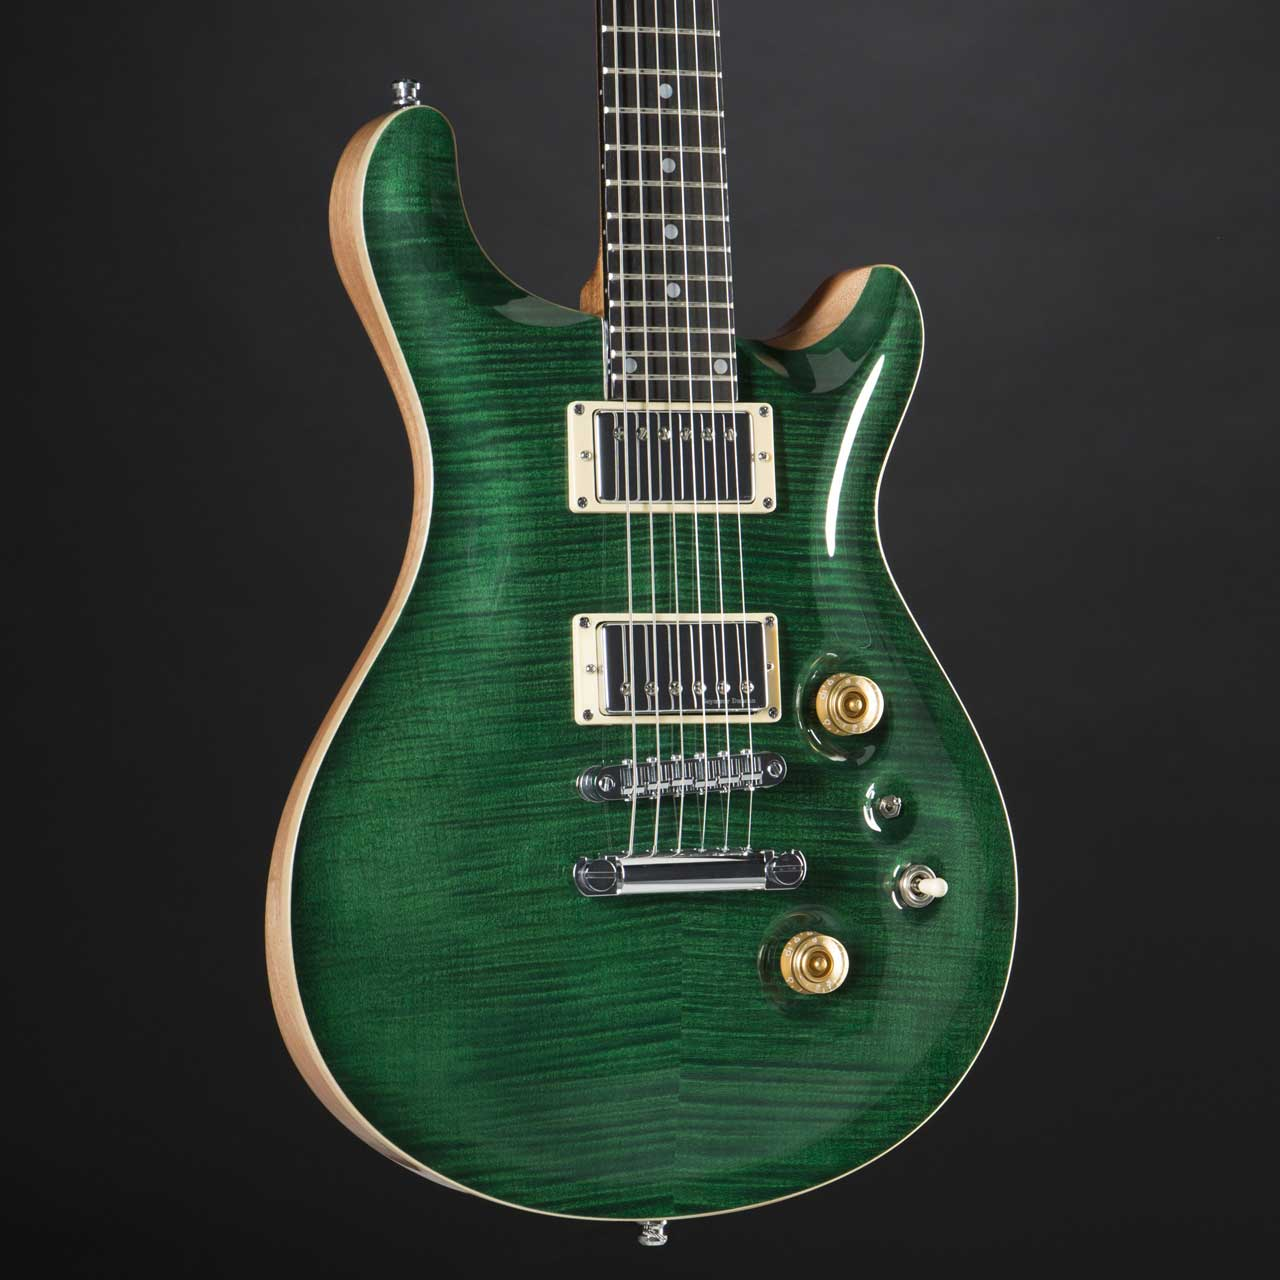 Fame Forum IV Classic Emerald Green Highgloss Pickups